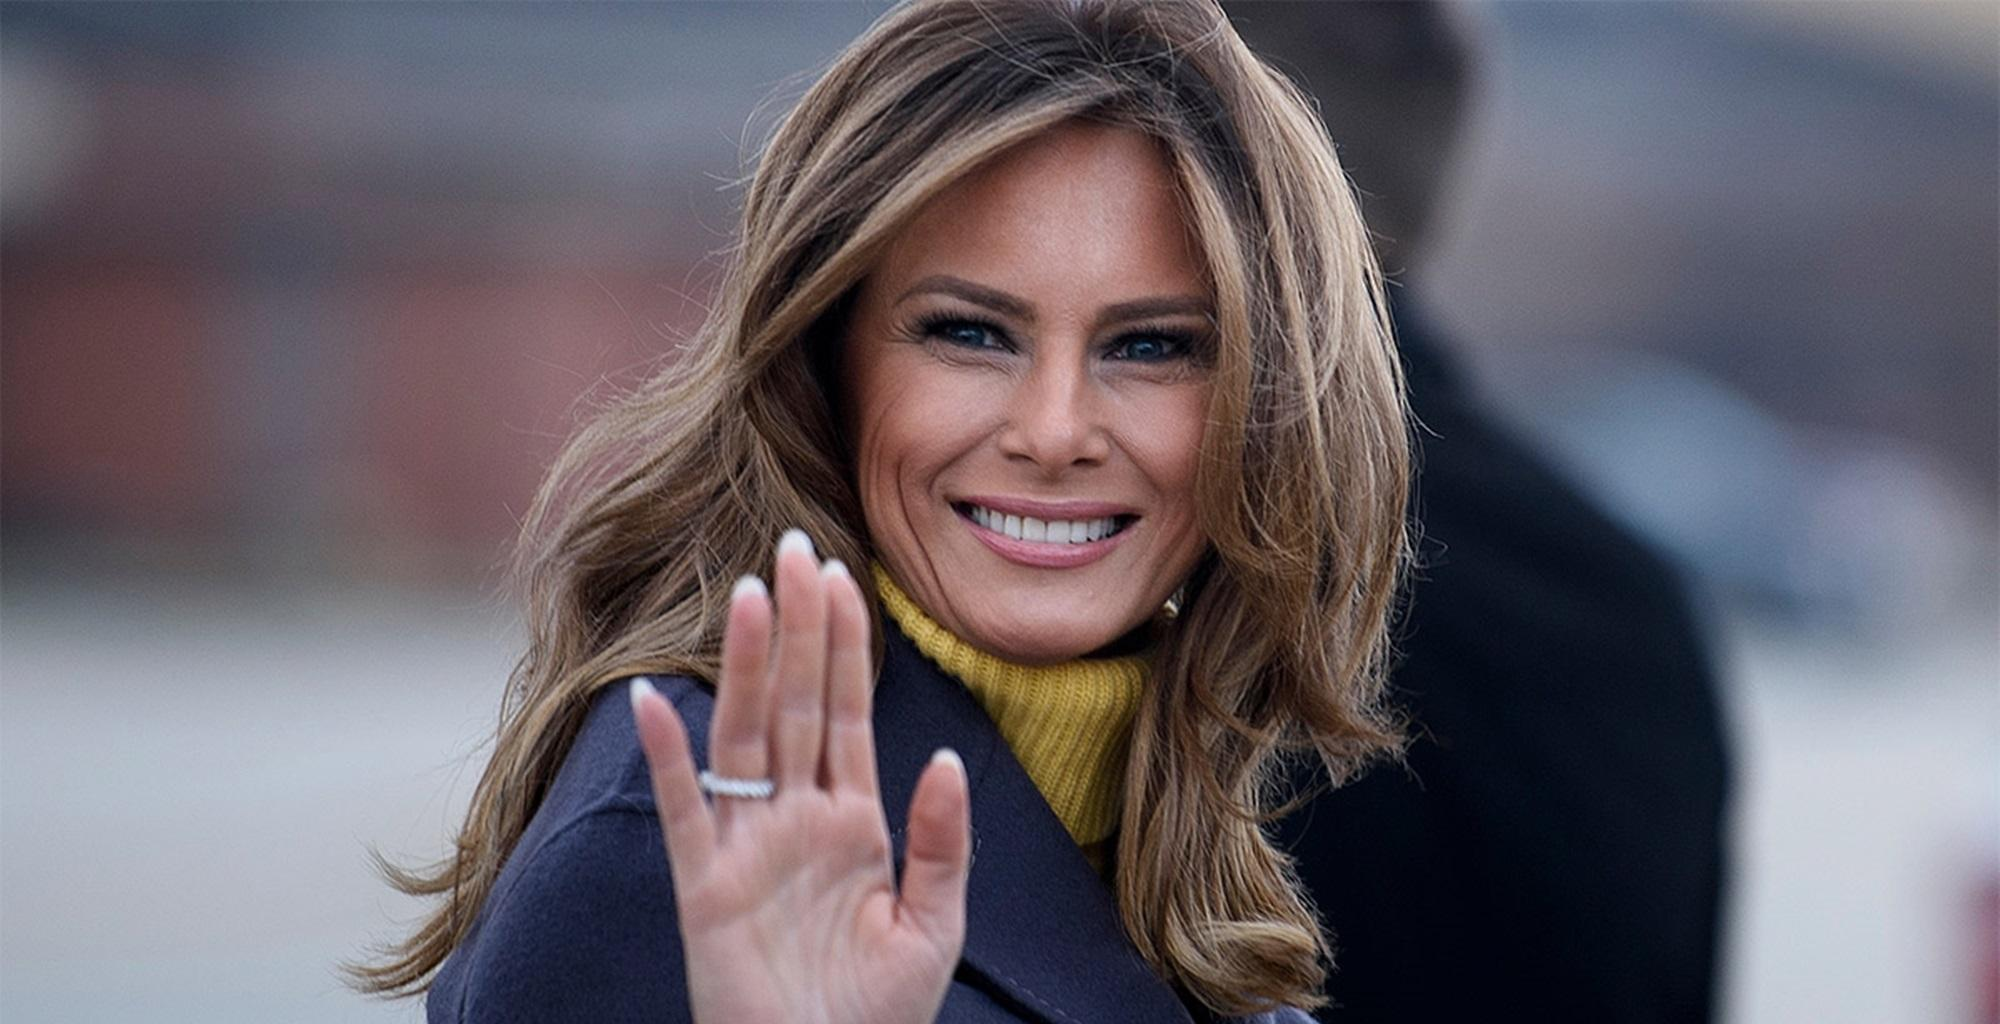 John Legend Shares A Video Claiming That Melania Trump Is Too Occupied With This Famous Man To Spend Time With President Donald Trump